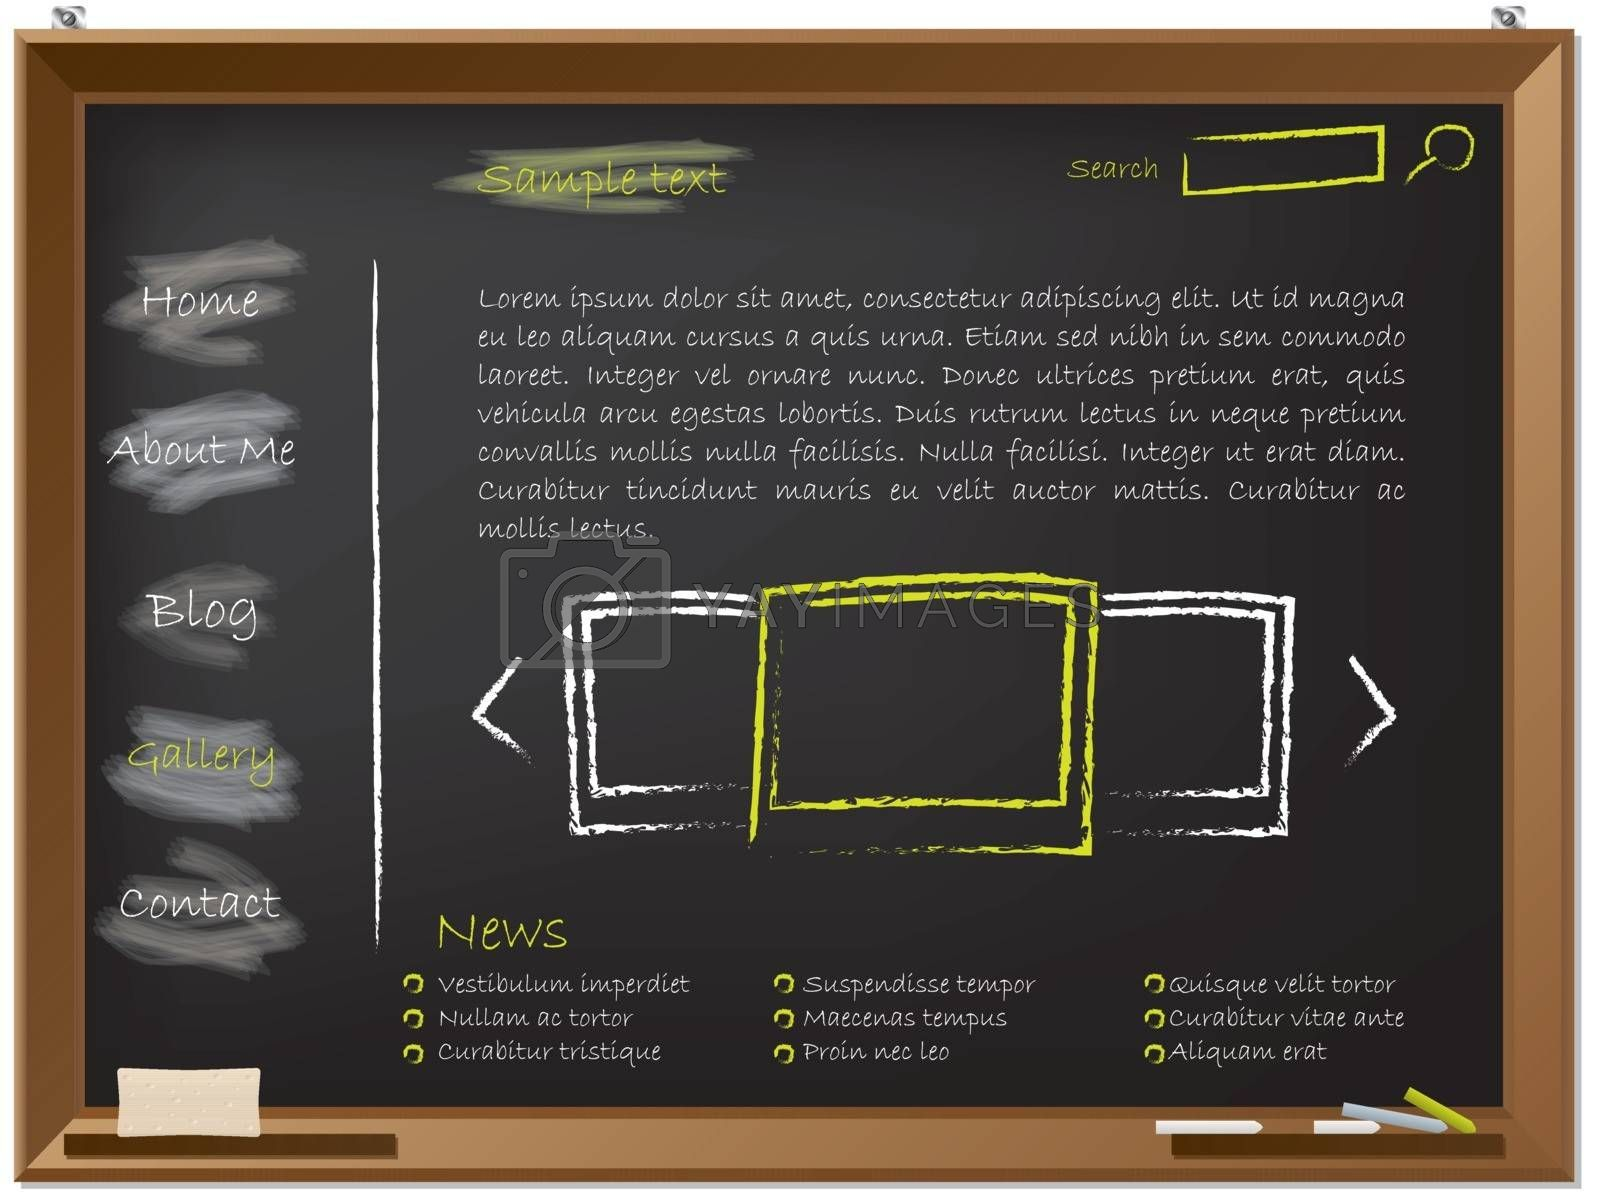 Website template design on blackboard drawn with chalk